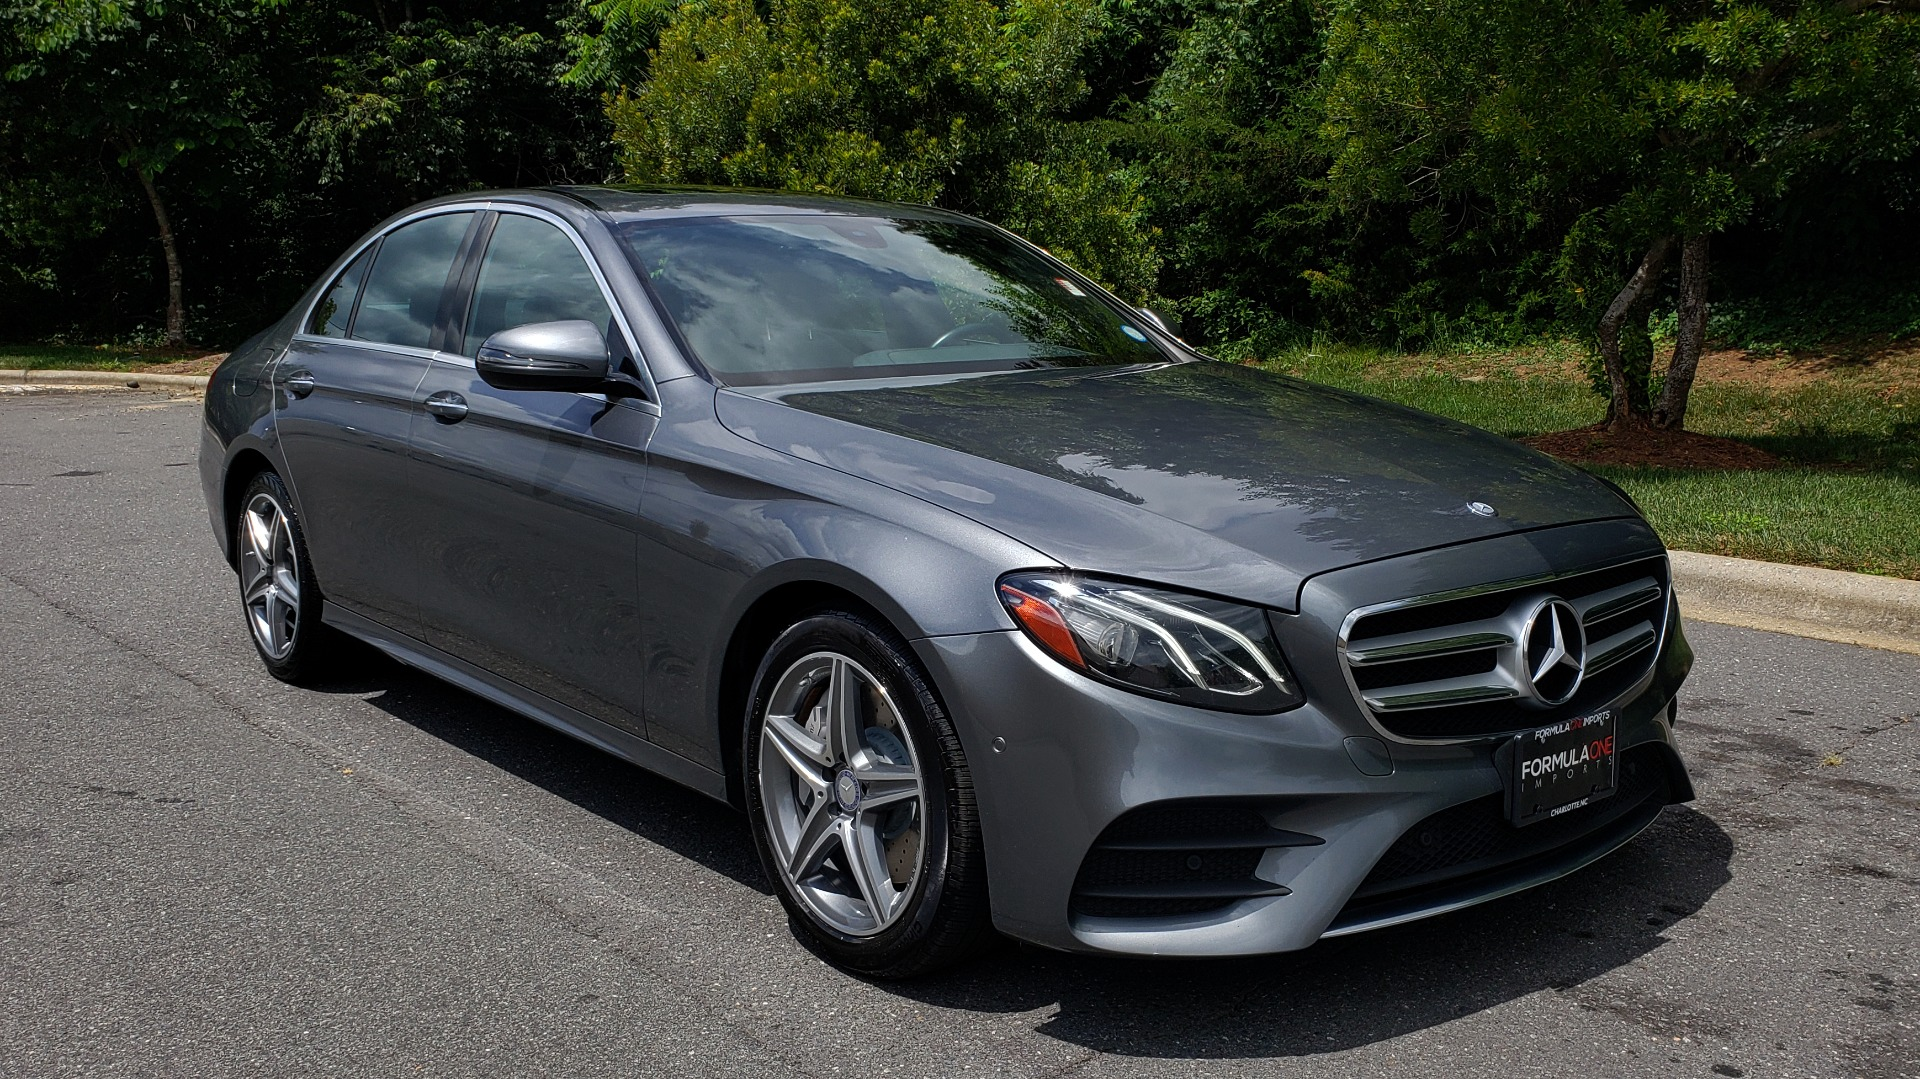 Used 2017 Mercedes-Benz E-Class E 300 4MATIC PREMIUM / SPORT / NAV / BURMESTER / HTD STS / REARVIEW for sale $30,495 at Formula Imports in Charlotte NC 28227 4